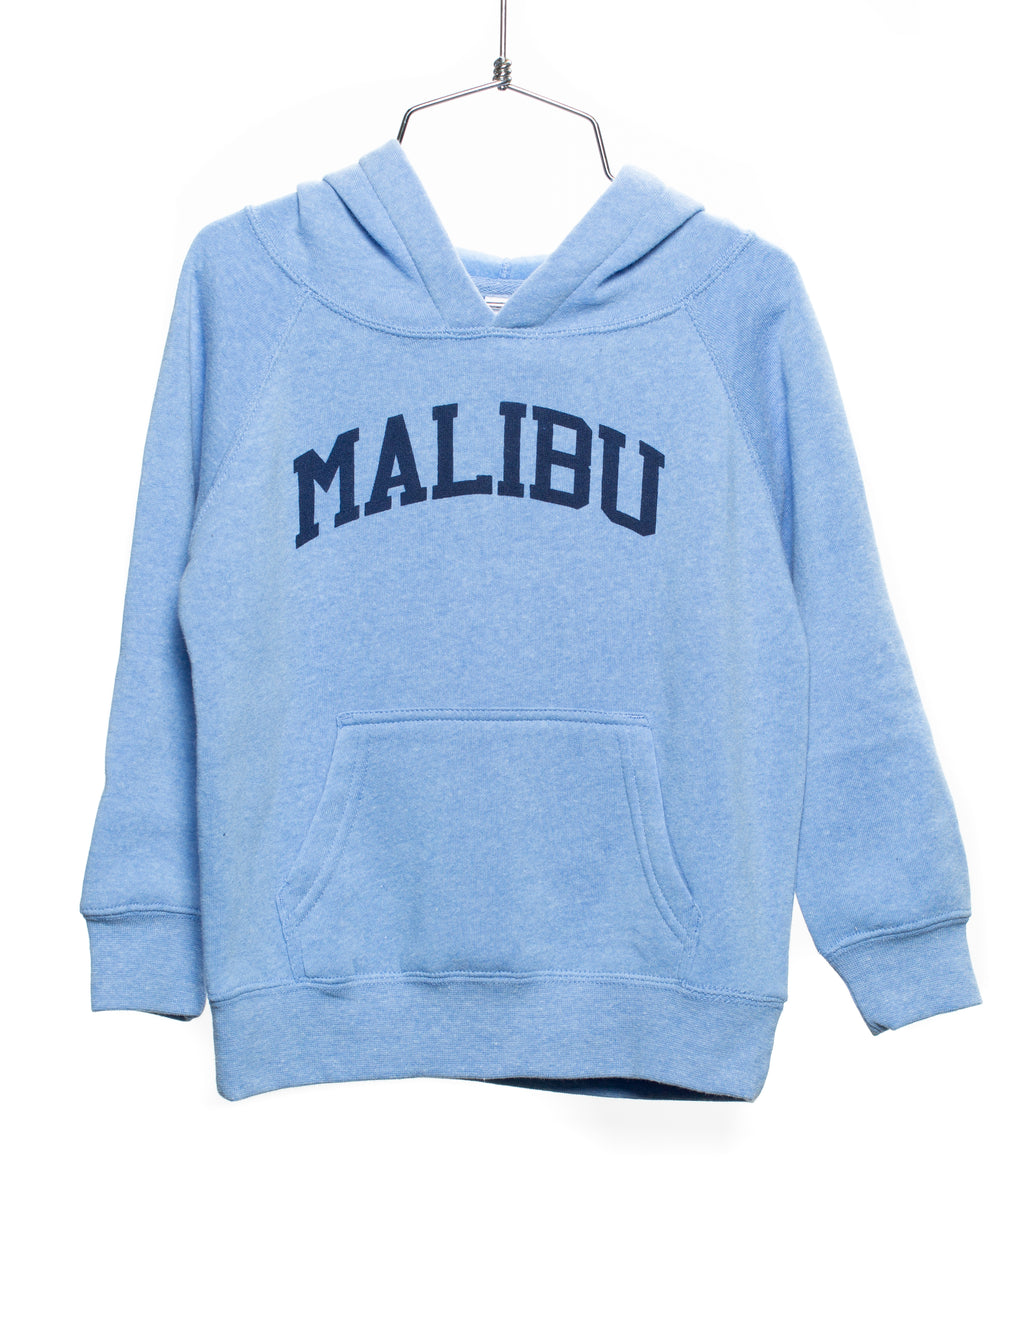 Malibu Toddler Special Blend Pullover Hoodie